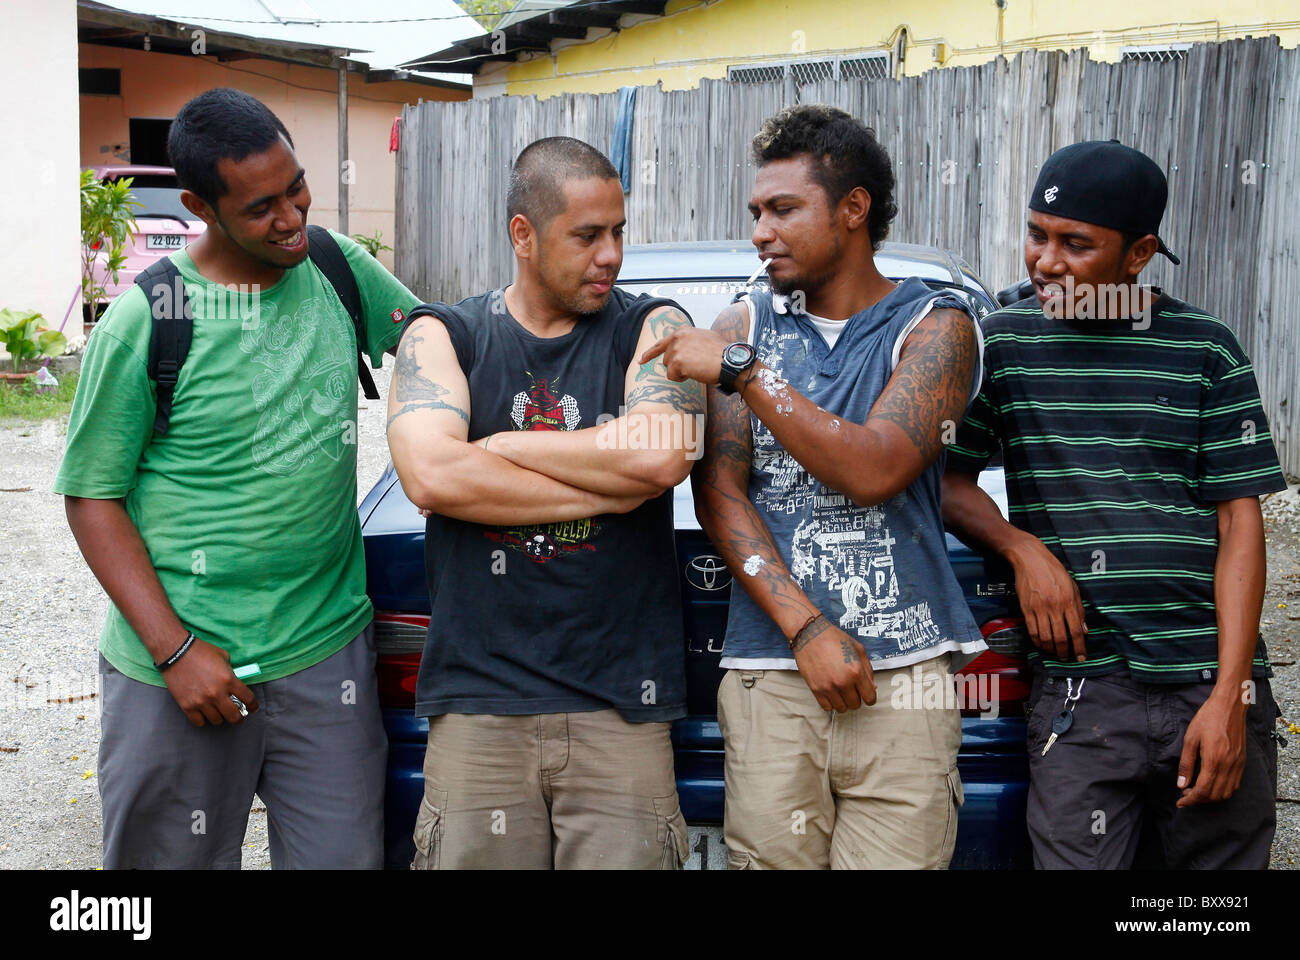 juvenile gangs Juvenile and youth gangs - history, scope of gang problems, correlates of gang proliferation, gangs and crime, drugs and gangs.